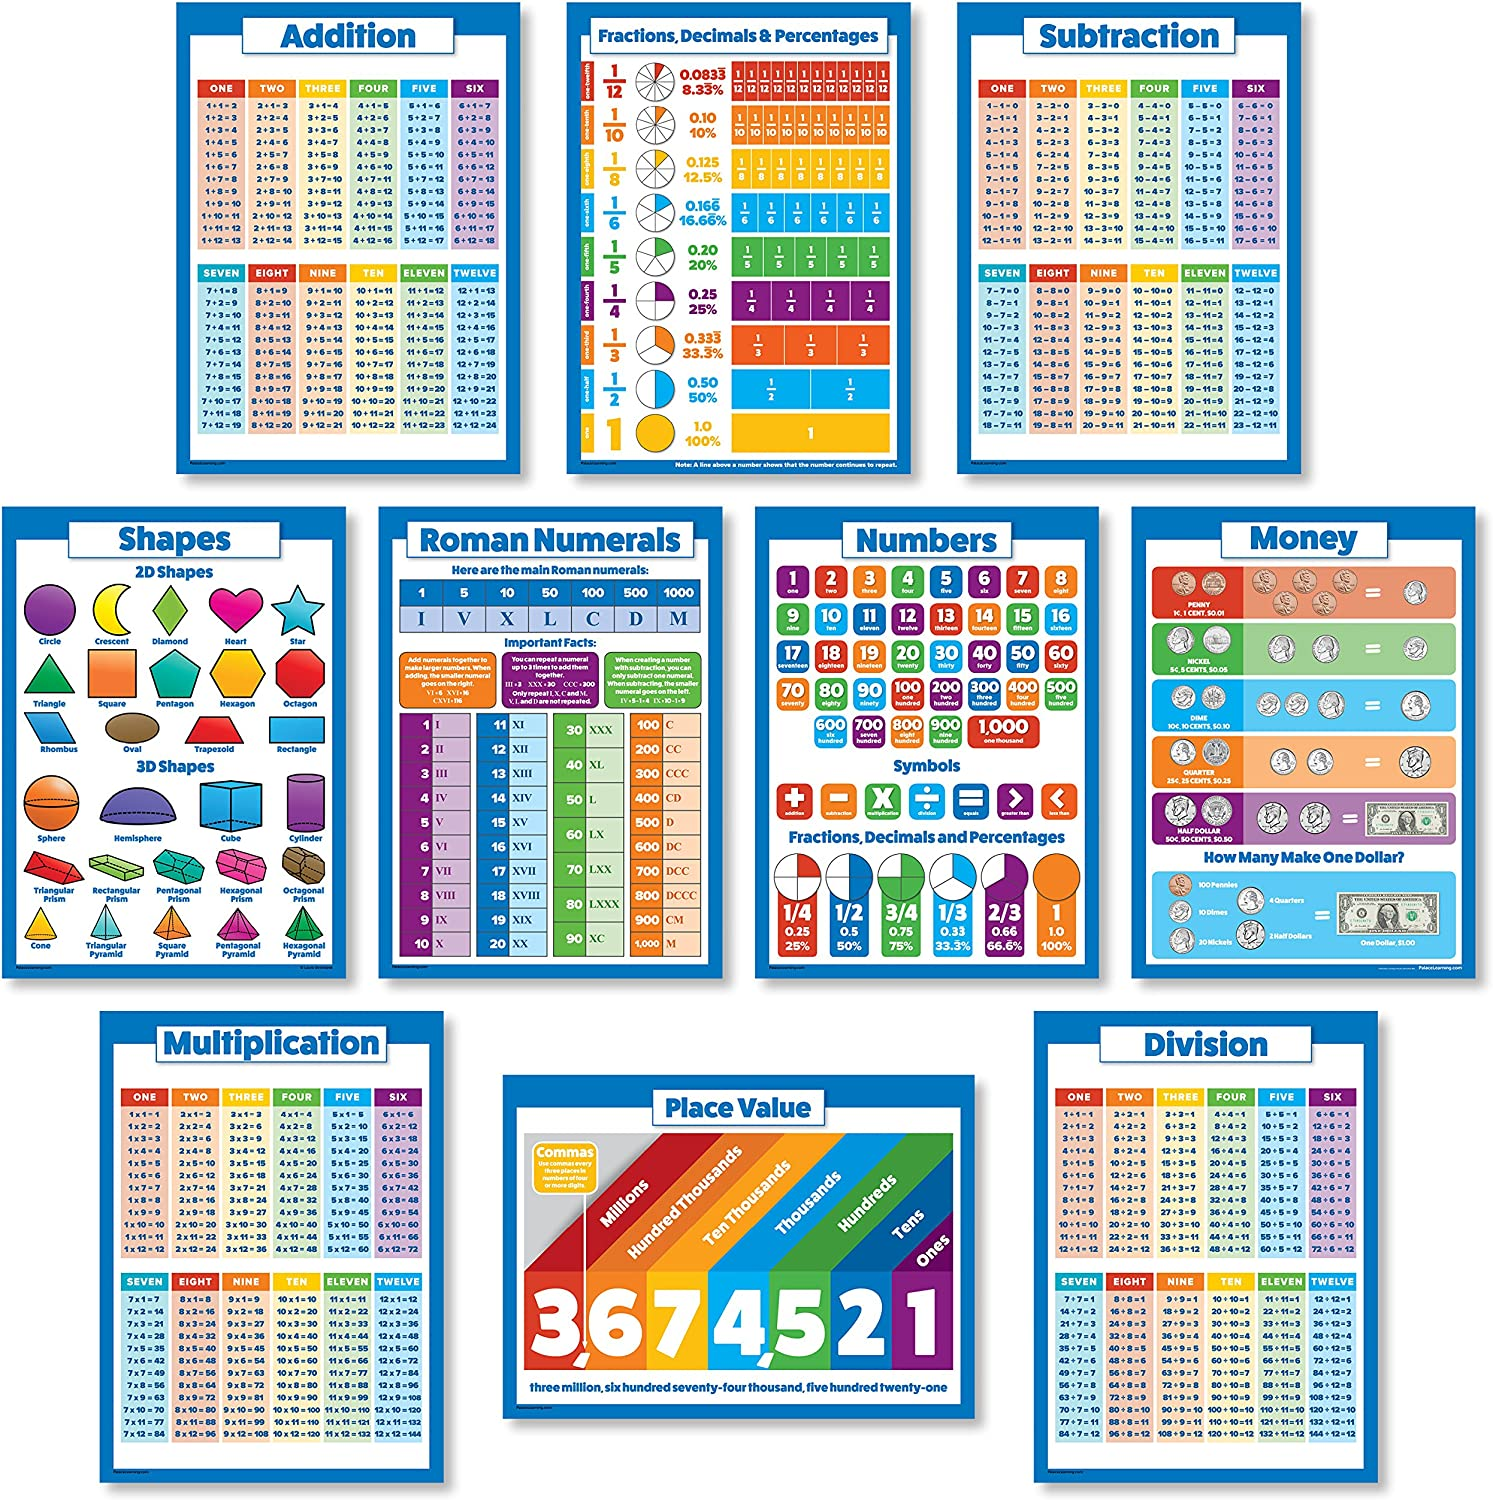 10 Large Math Posters for Kids - Multiplication Chart, Division, Addition, Subtraction, Numbers 1-100 +, 3D Shapes, Fractions, Decimals, Percentages, Roman Numerals, Place Value, Money (PAPER) 18 x 24